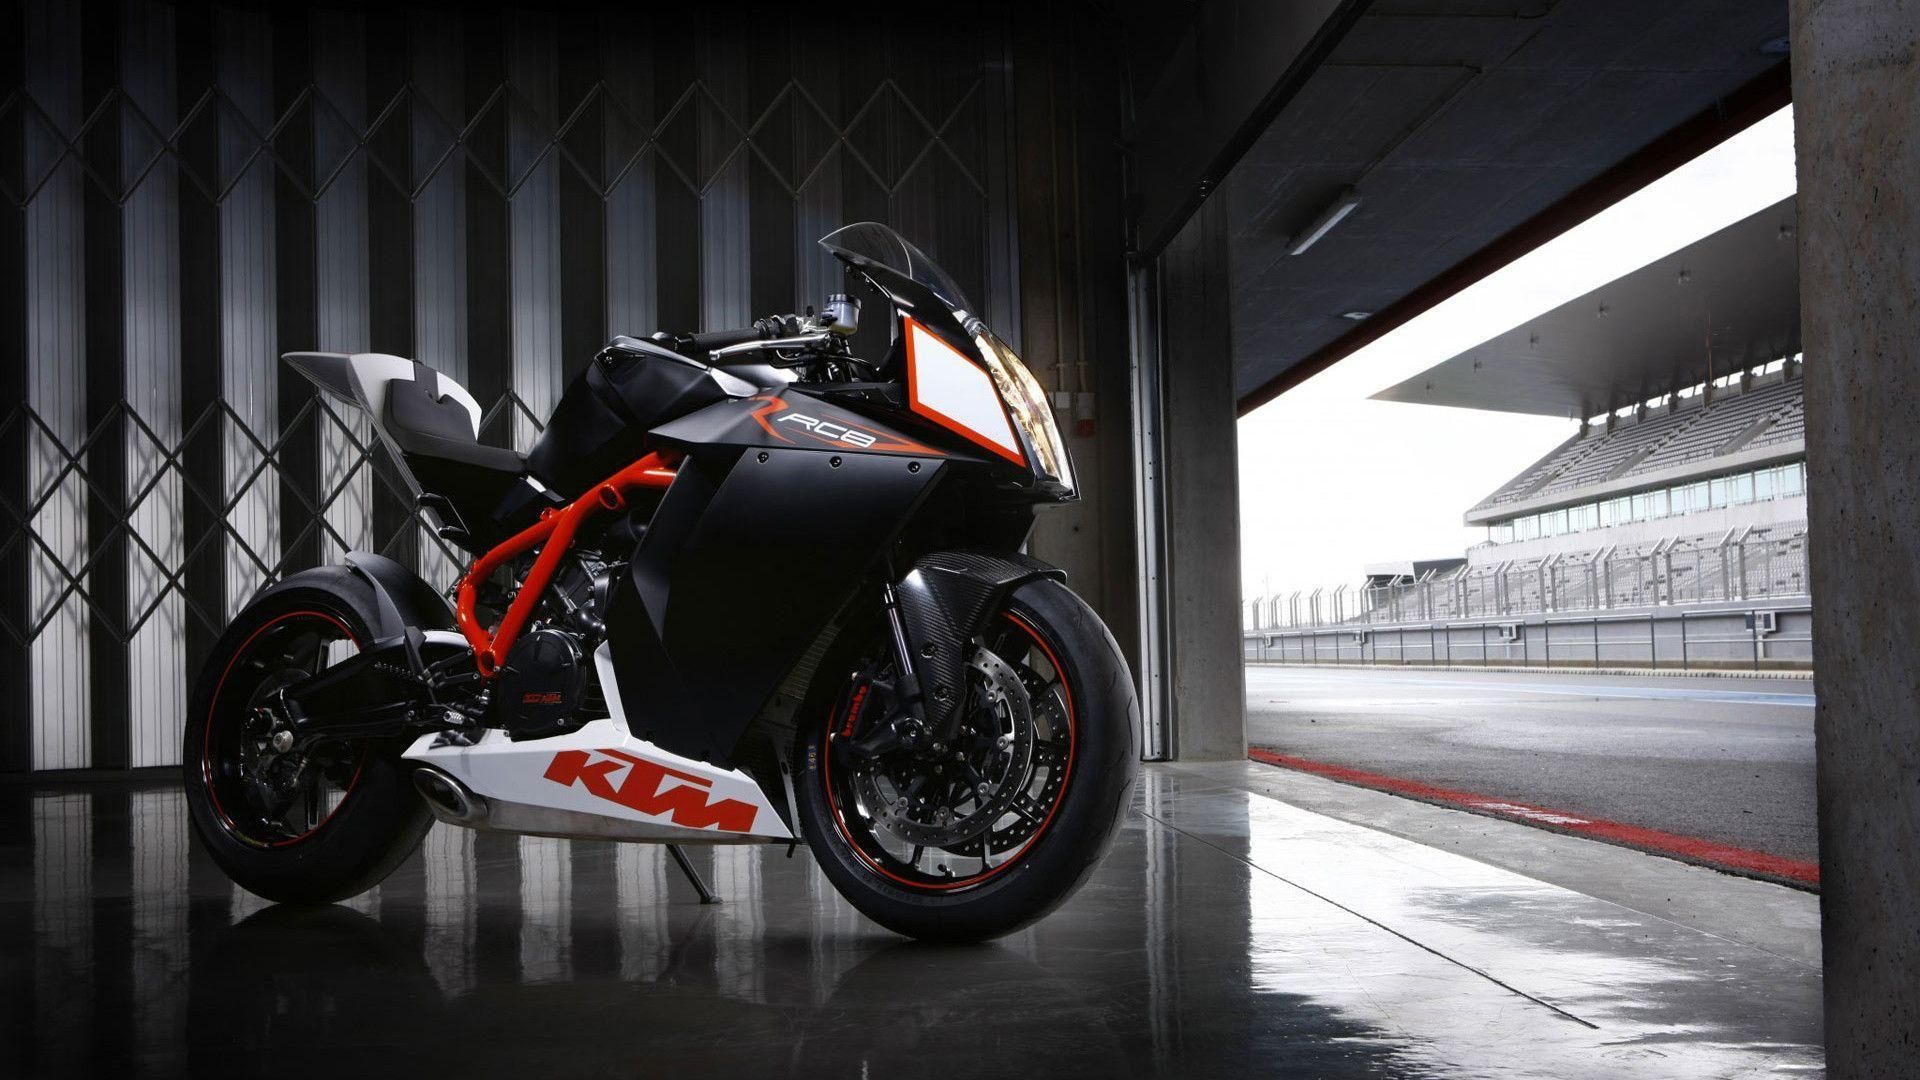 Ktm Full Hd Wallpapers Free Download 33 Tapetes Duas Rodas